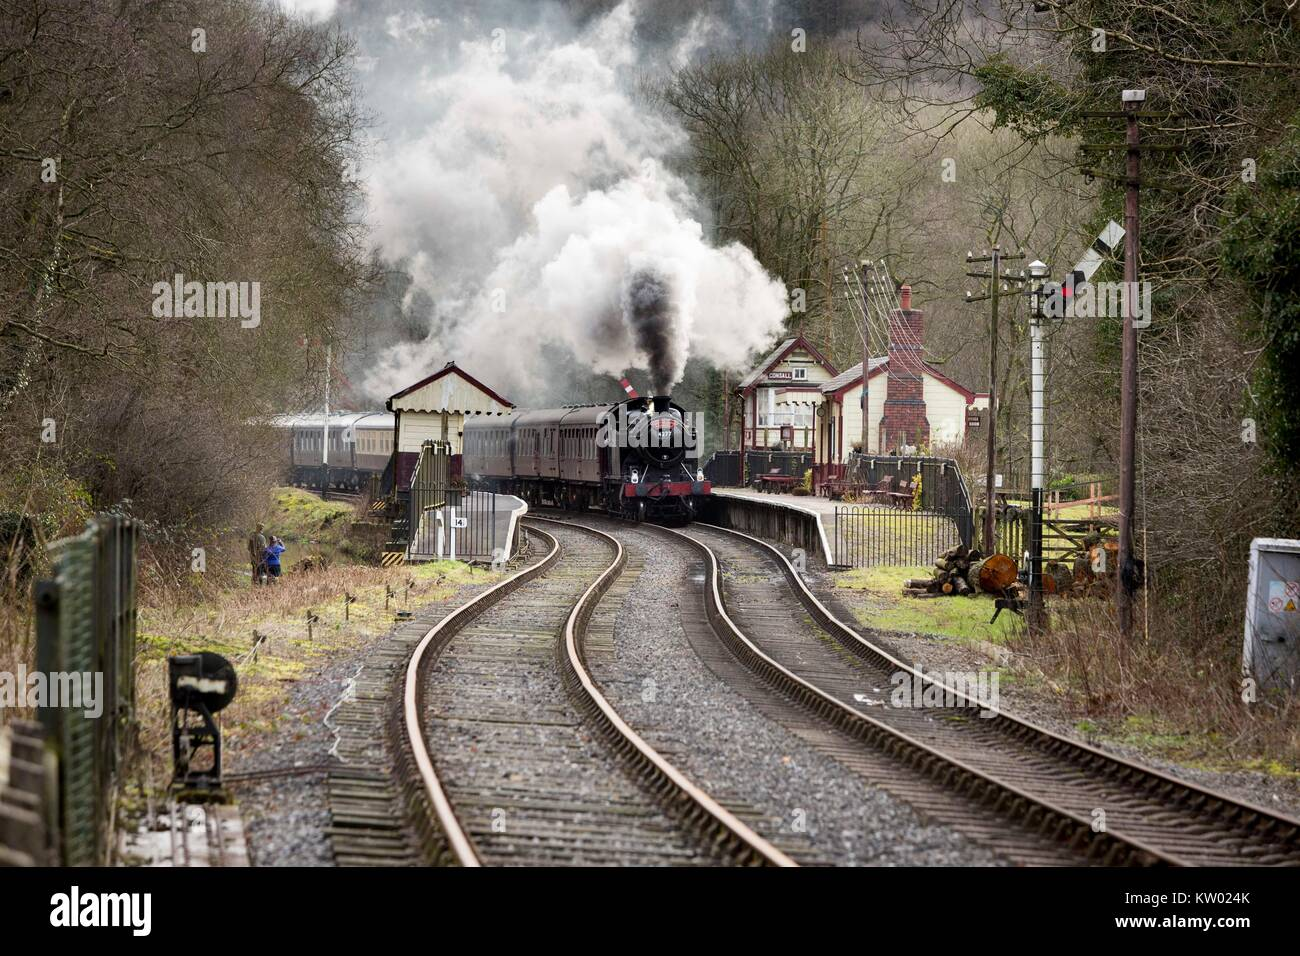 A steam train  on The Churnett Valley Railway near  Consall Station. - Stock Image